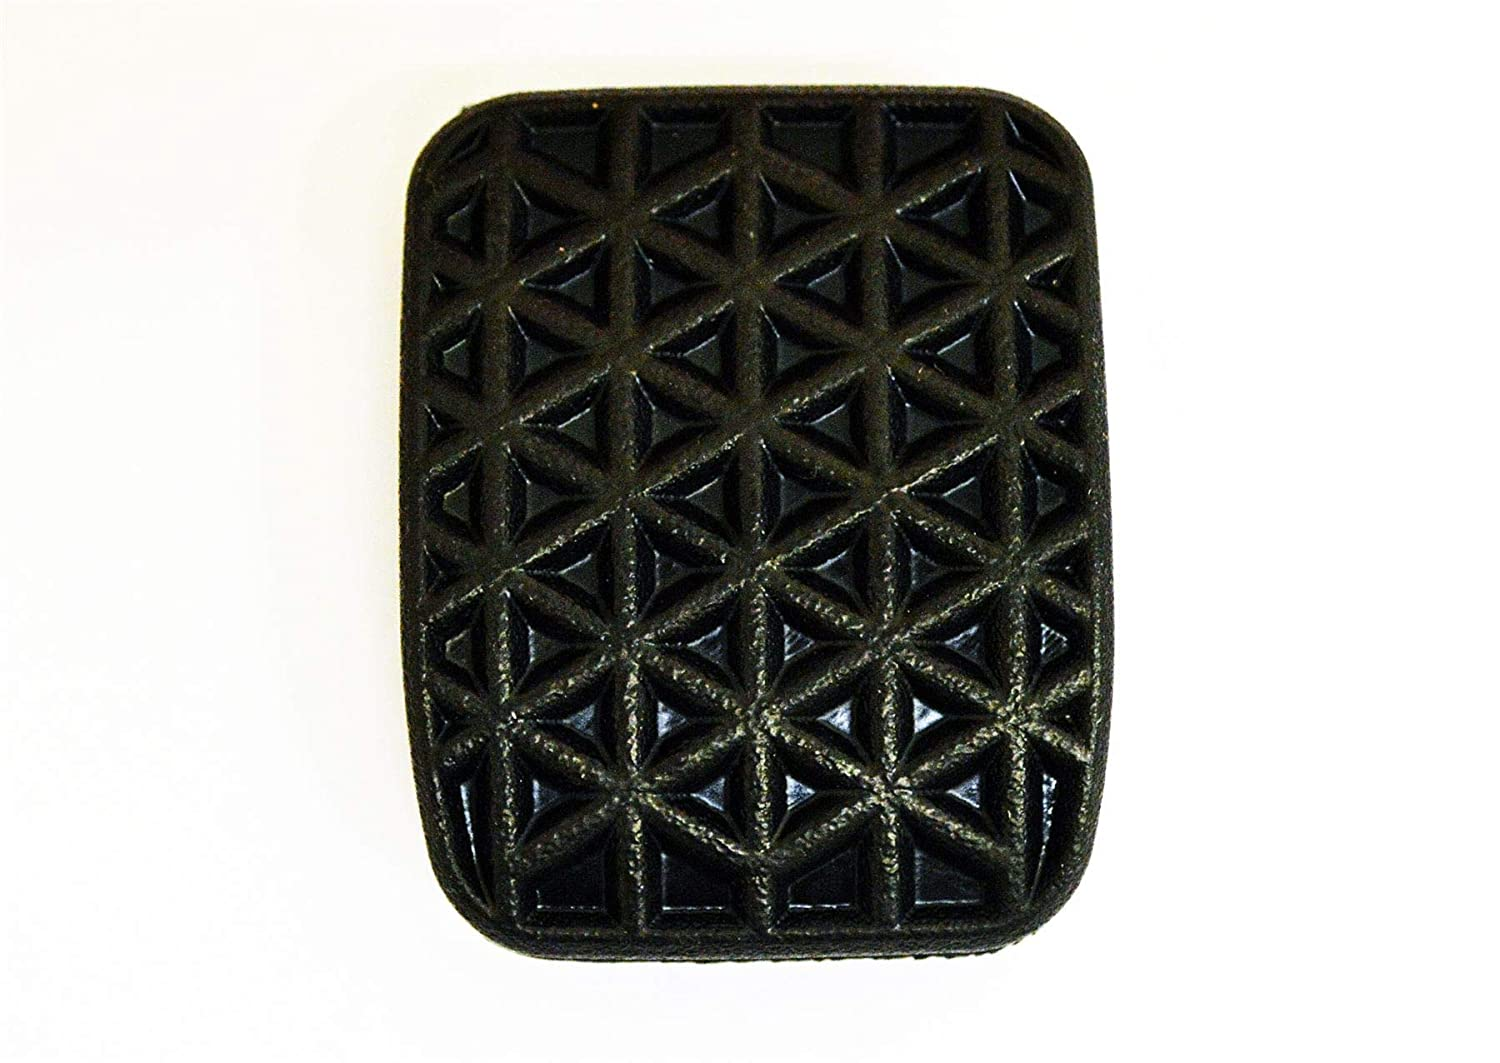 LSC 24404216 : GENUINE Brake/Clutch Pedal Rubber Pad/Cover - NEW from LSC Genuine Vauxhall (OEM)